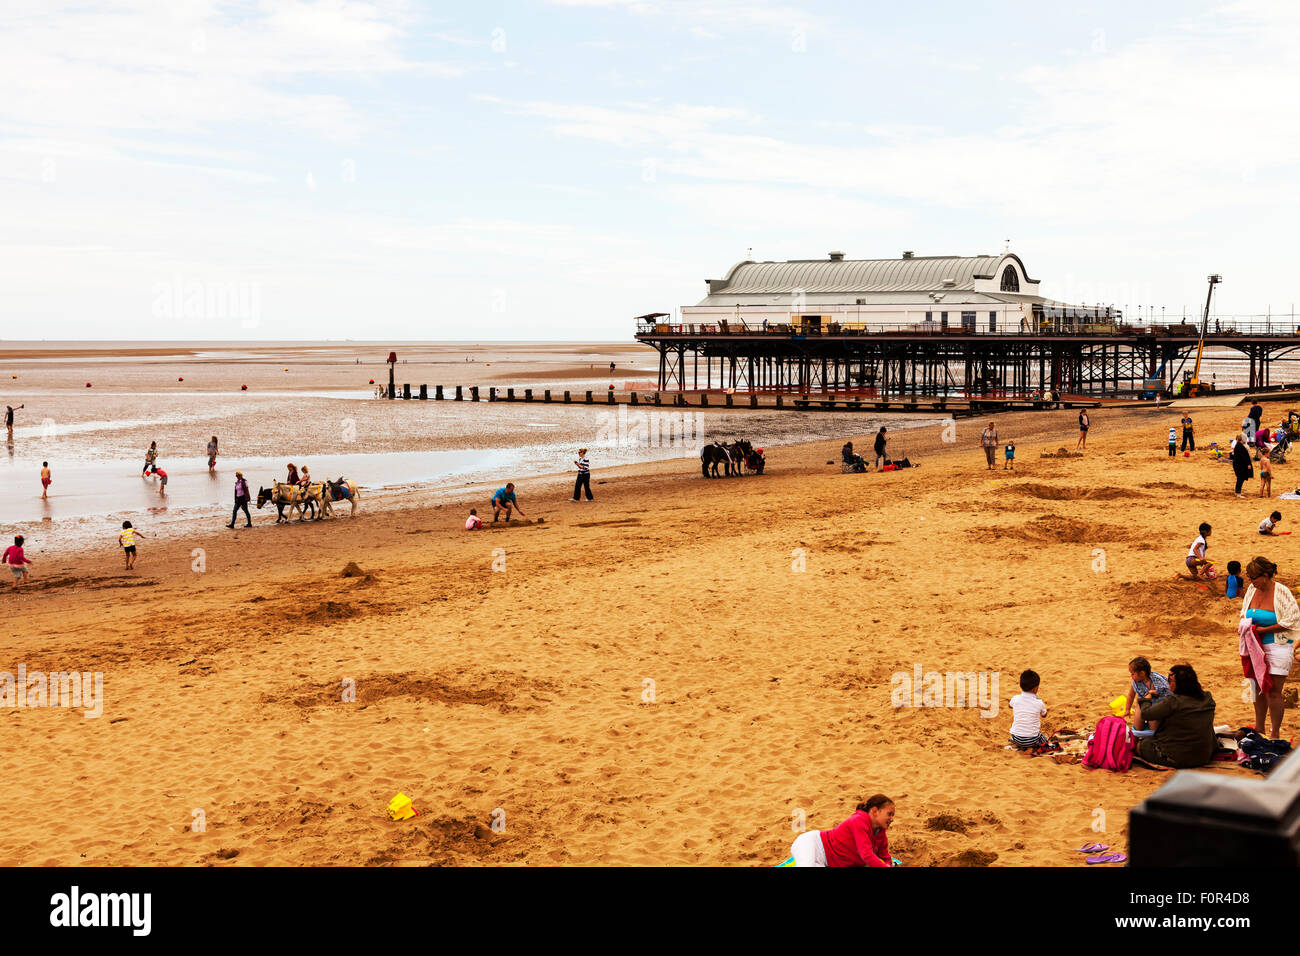 Cleethorpes seafront beach kids playing in sand in front of the pier UK town towns England coast coastal sea - Stock Image